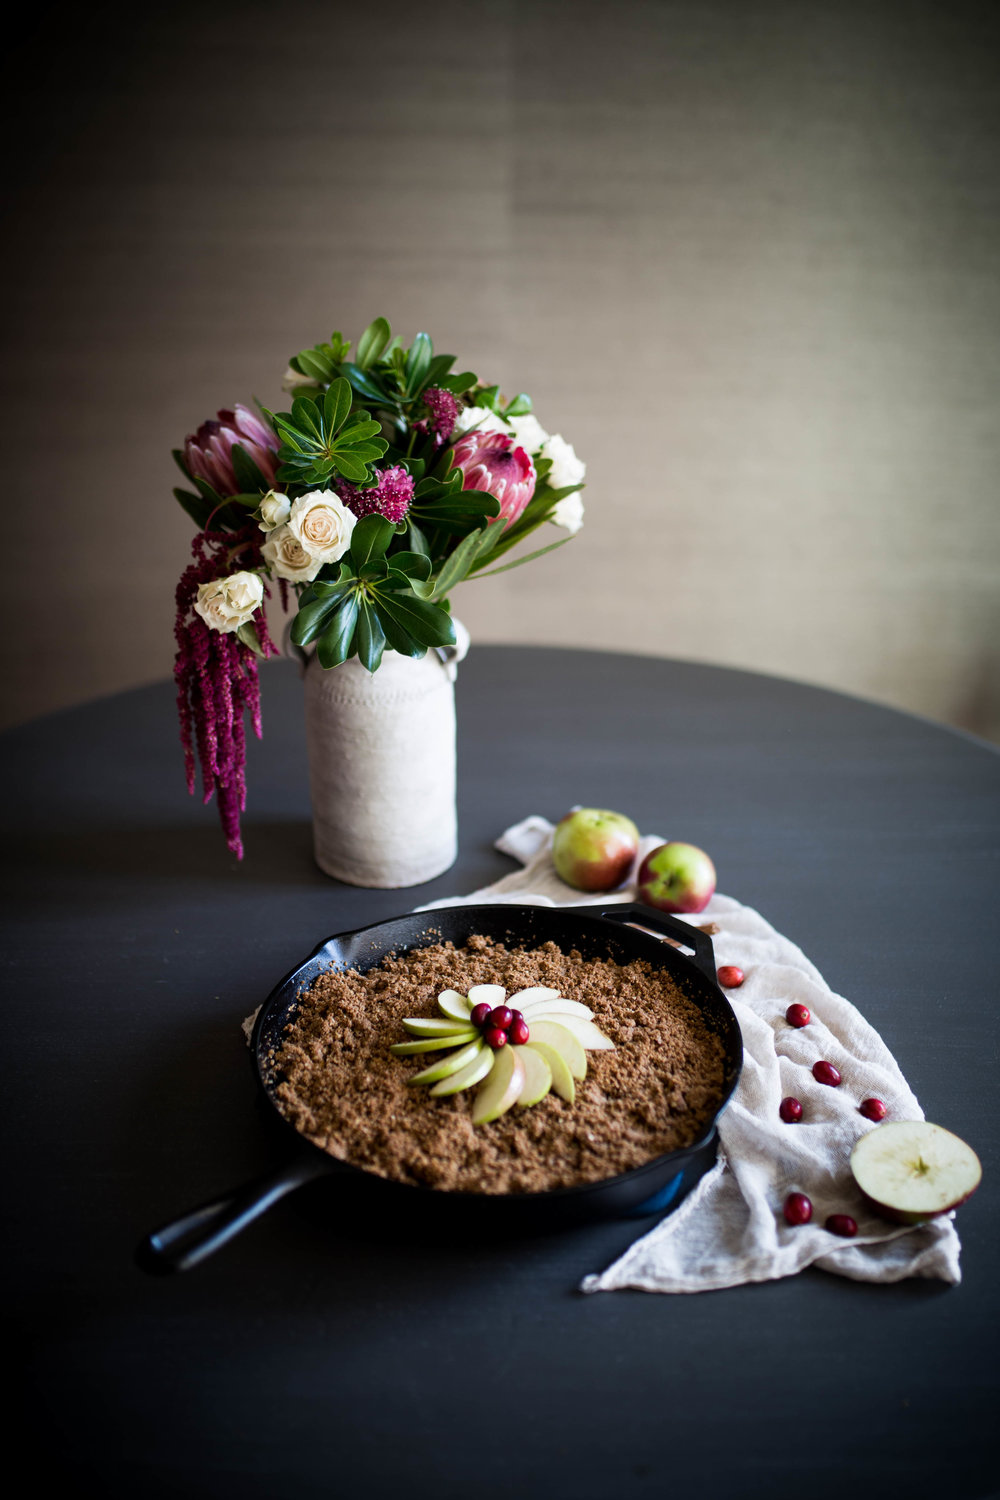 Gluten Free Cranberry Apple Crisp with Athleta | Jennifer Diaz | Holiday Recipes | Healthy Desserts | Gluten Free Desserts | Apple Pie | Thanksgiving Recipe